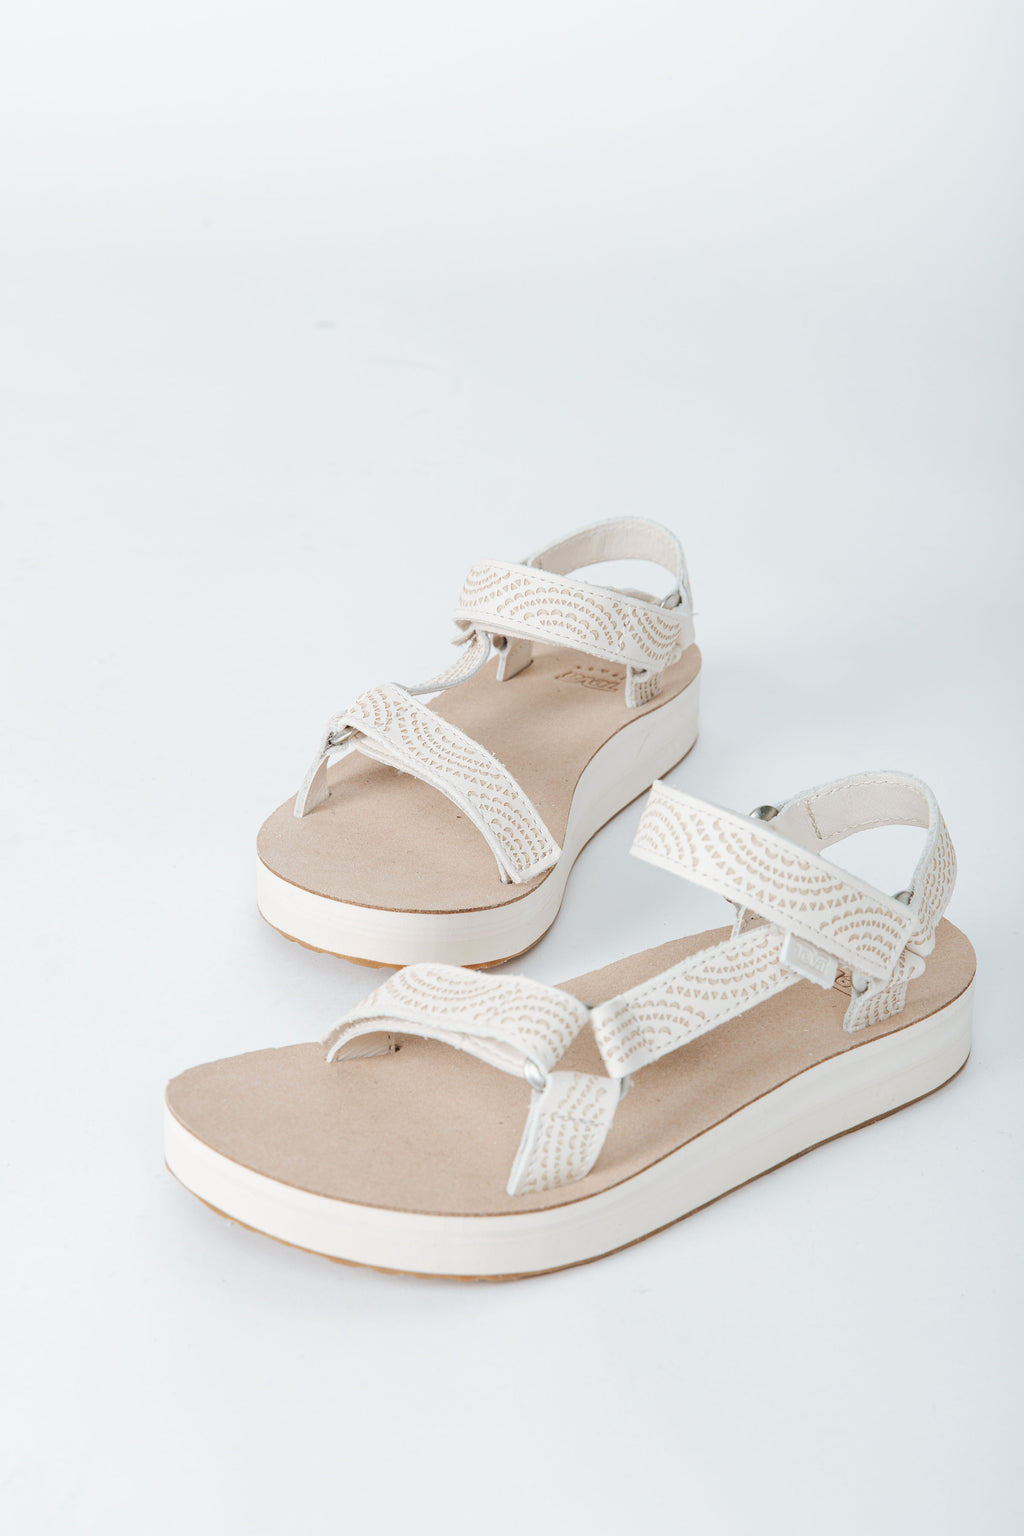 Teva: Midform Universal Geometric in White Swan, studio shoot; front view